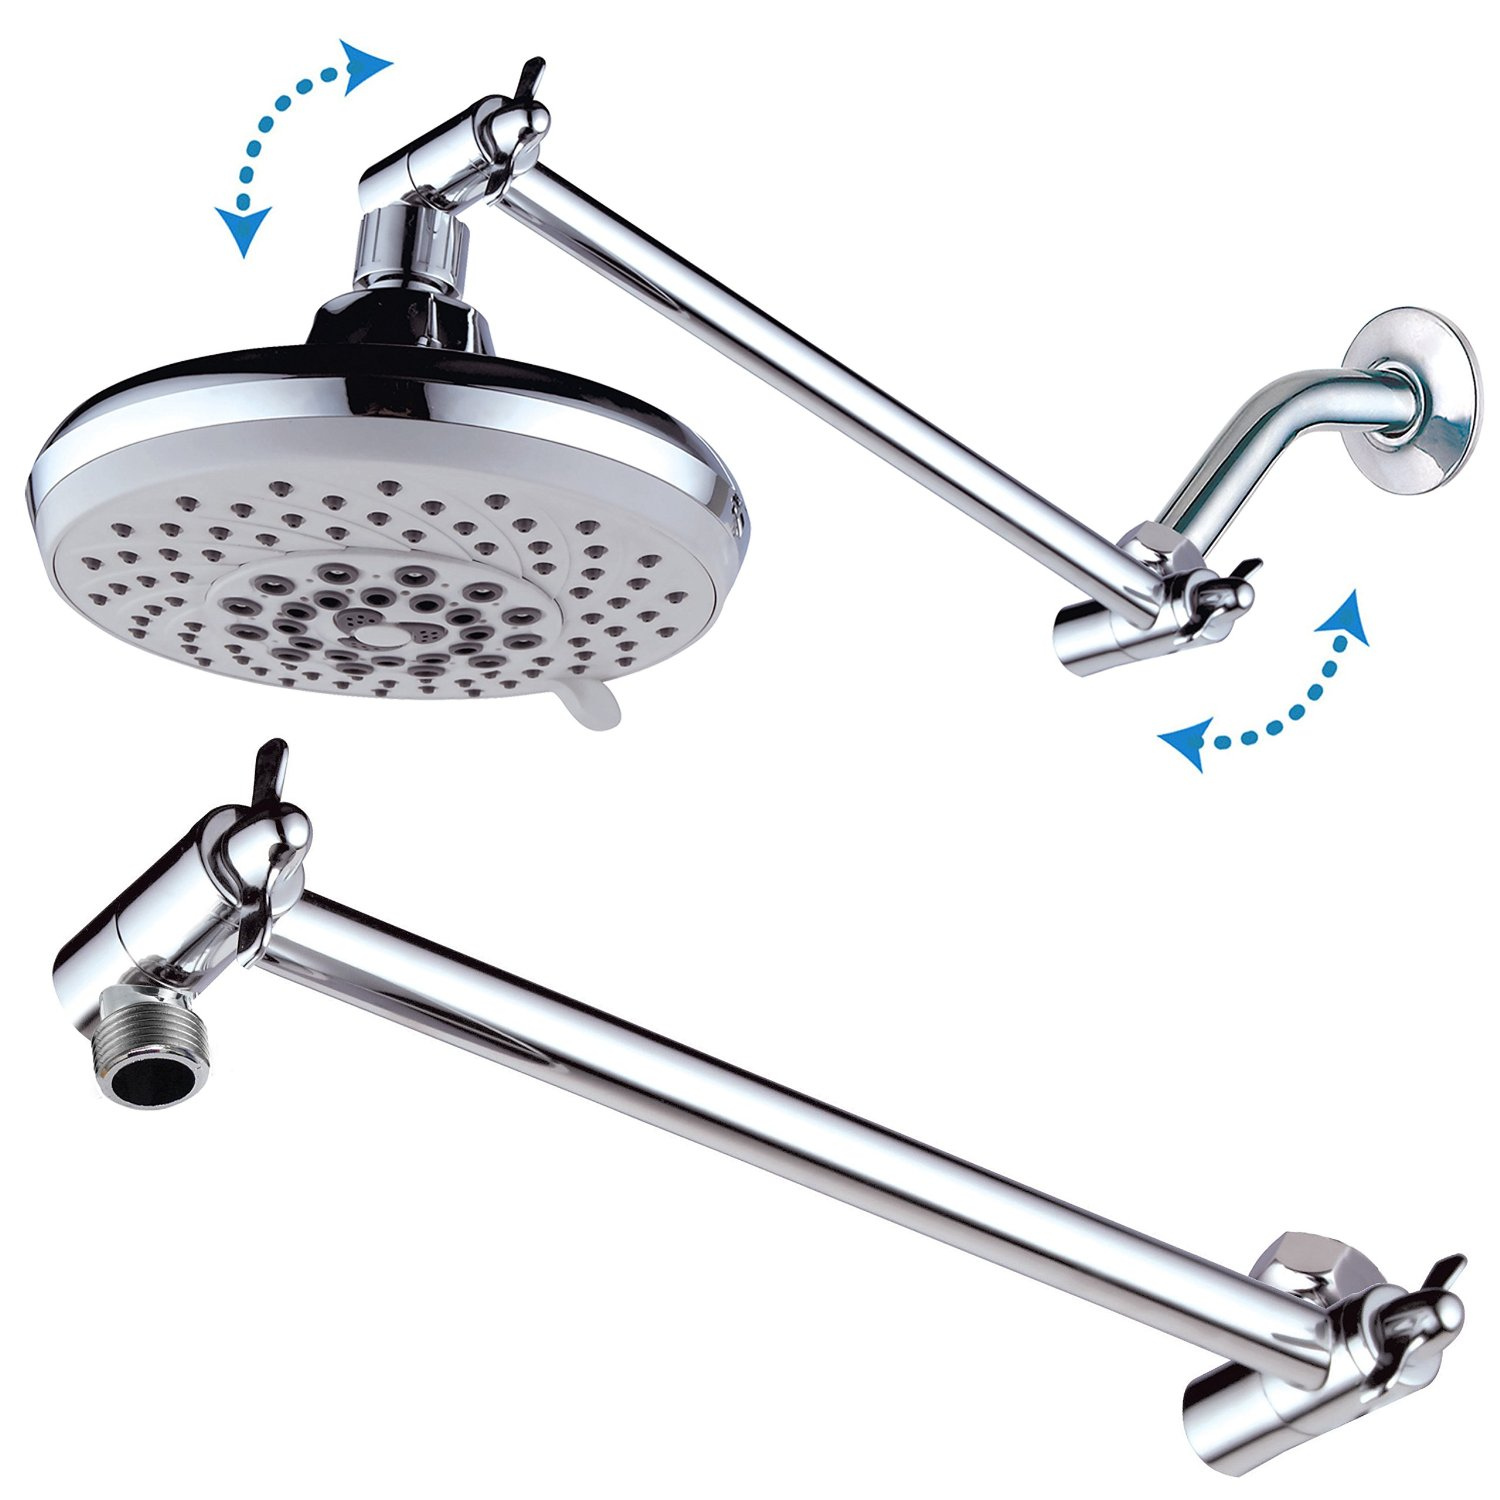 Showerhead Extension - Home Design Ideas and Pictures